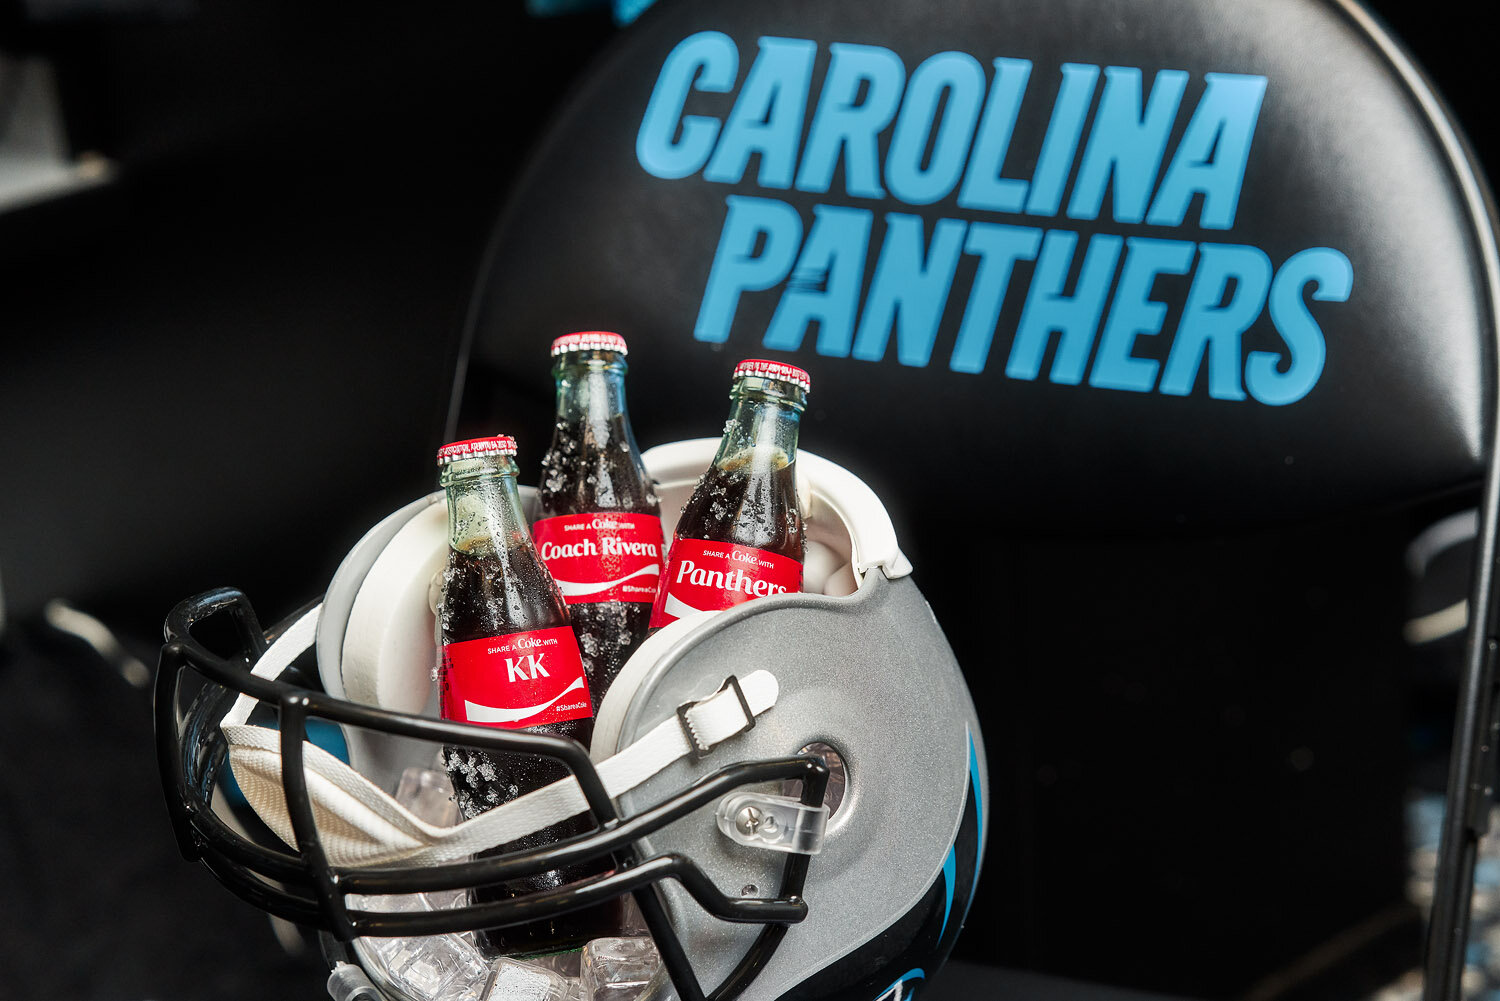 hales photo-coca-cola-carolina panthers-charlotte photography advertising marketing campaign production commercial editorial photographer atlanta-0019.jpg